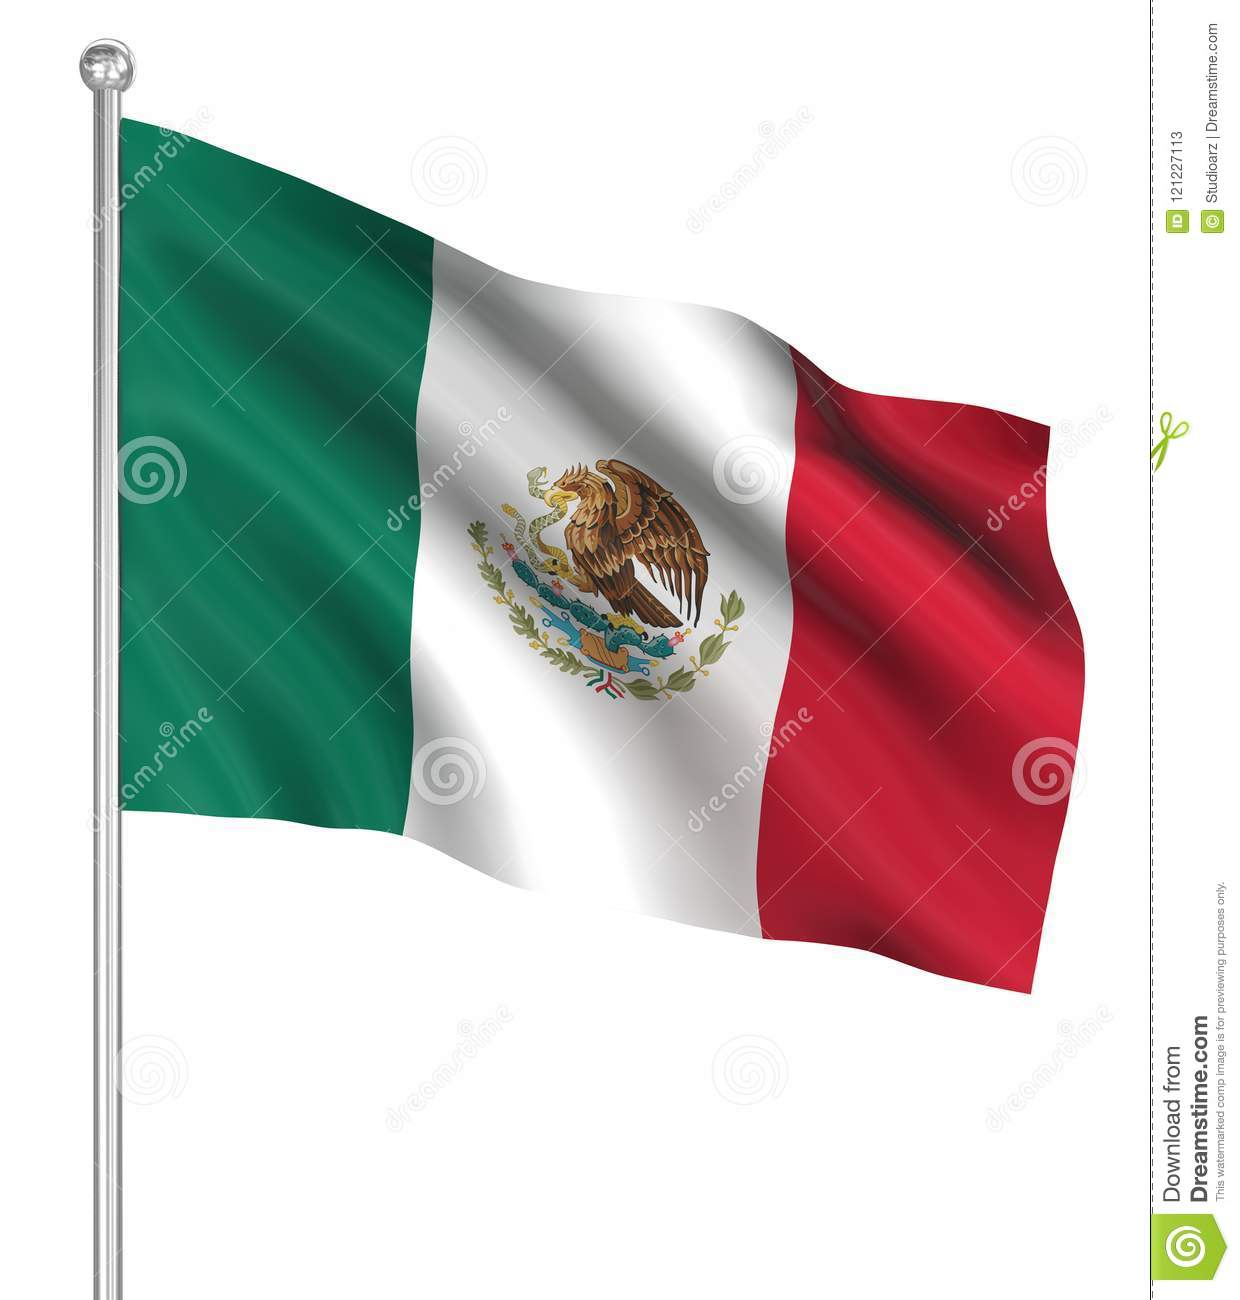 Country flag - Mexico